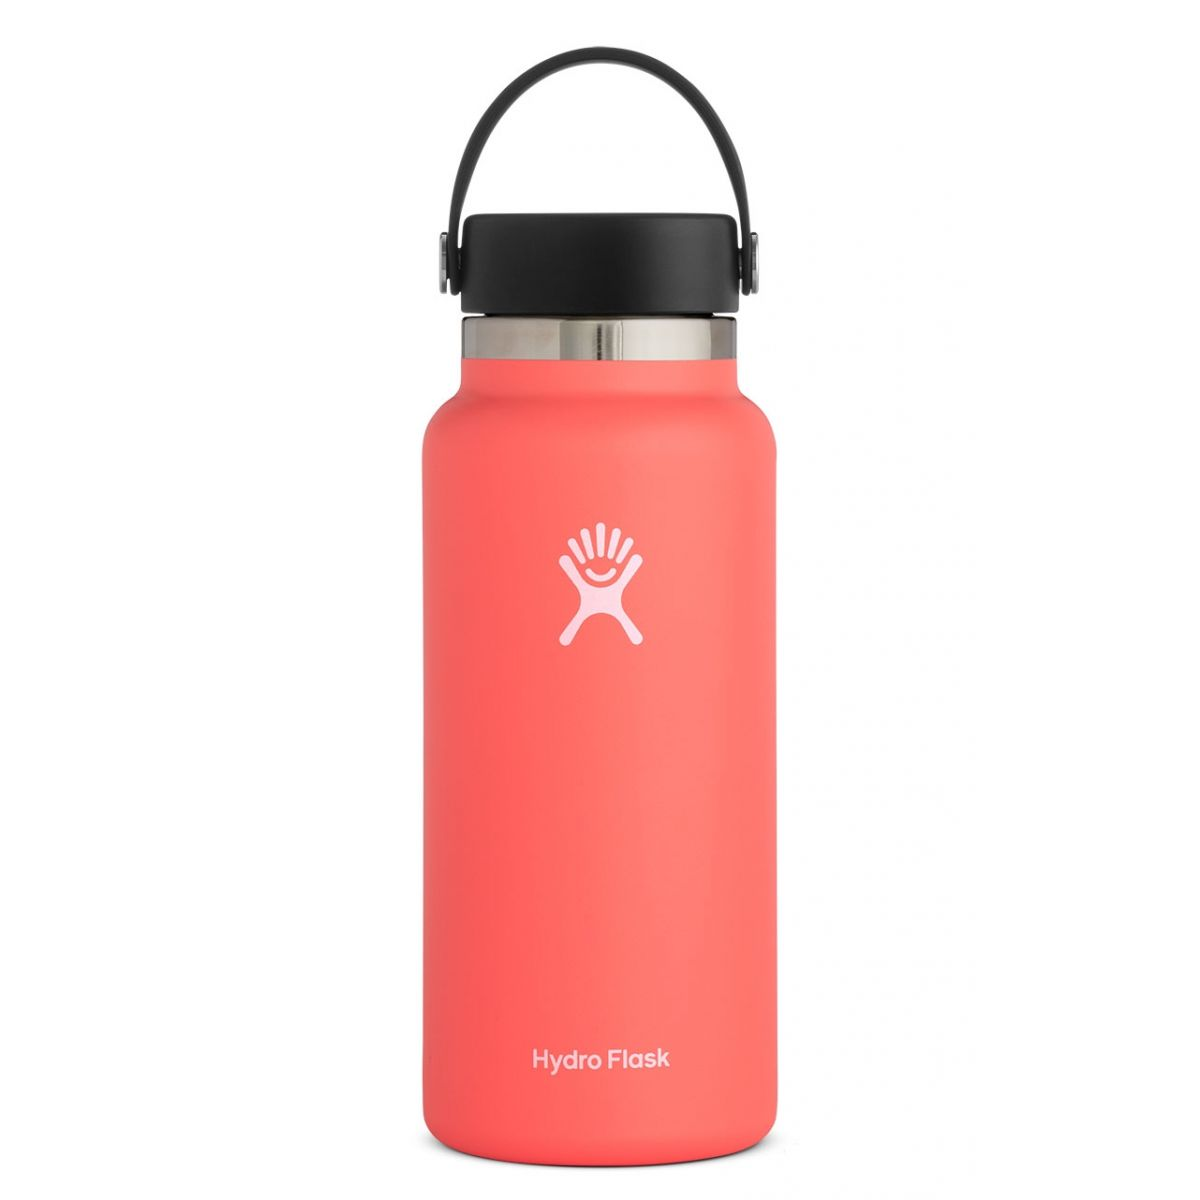 Cover Image For Hydroflask Insulated Wide Mouth Water Bottle, Hibiscus